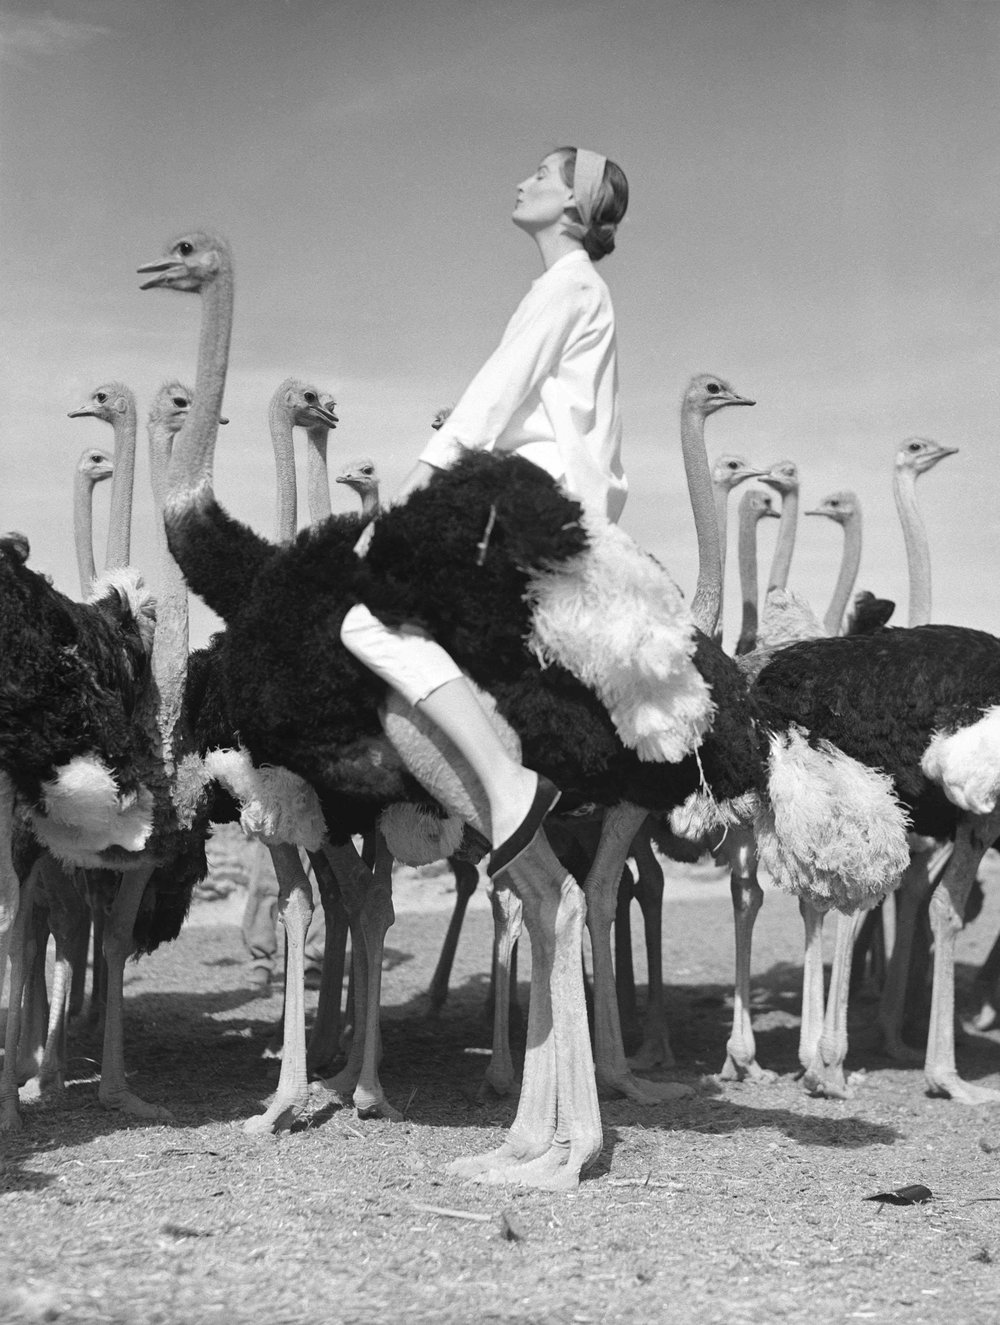 Wenda & Ostriches in South Africa for Vogue Magazine, 1951